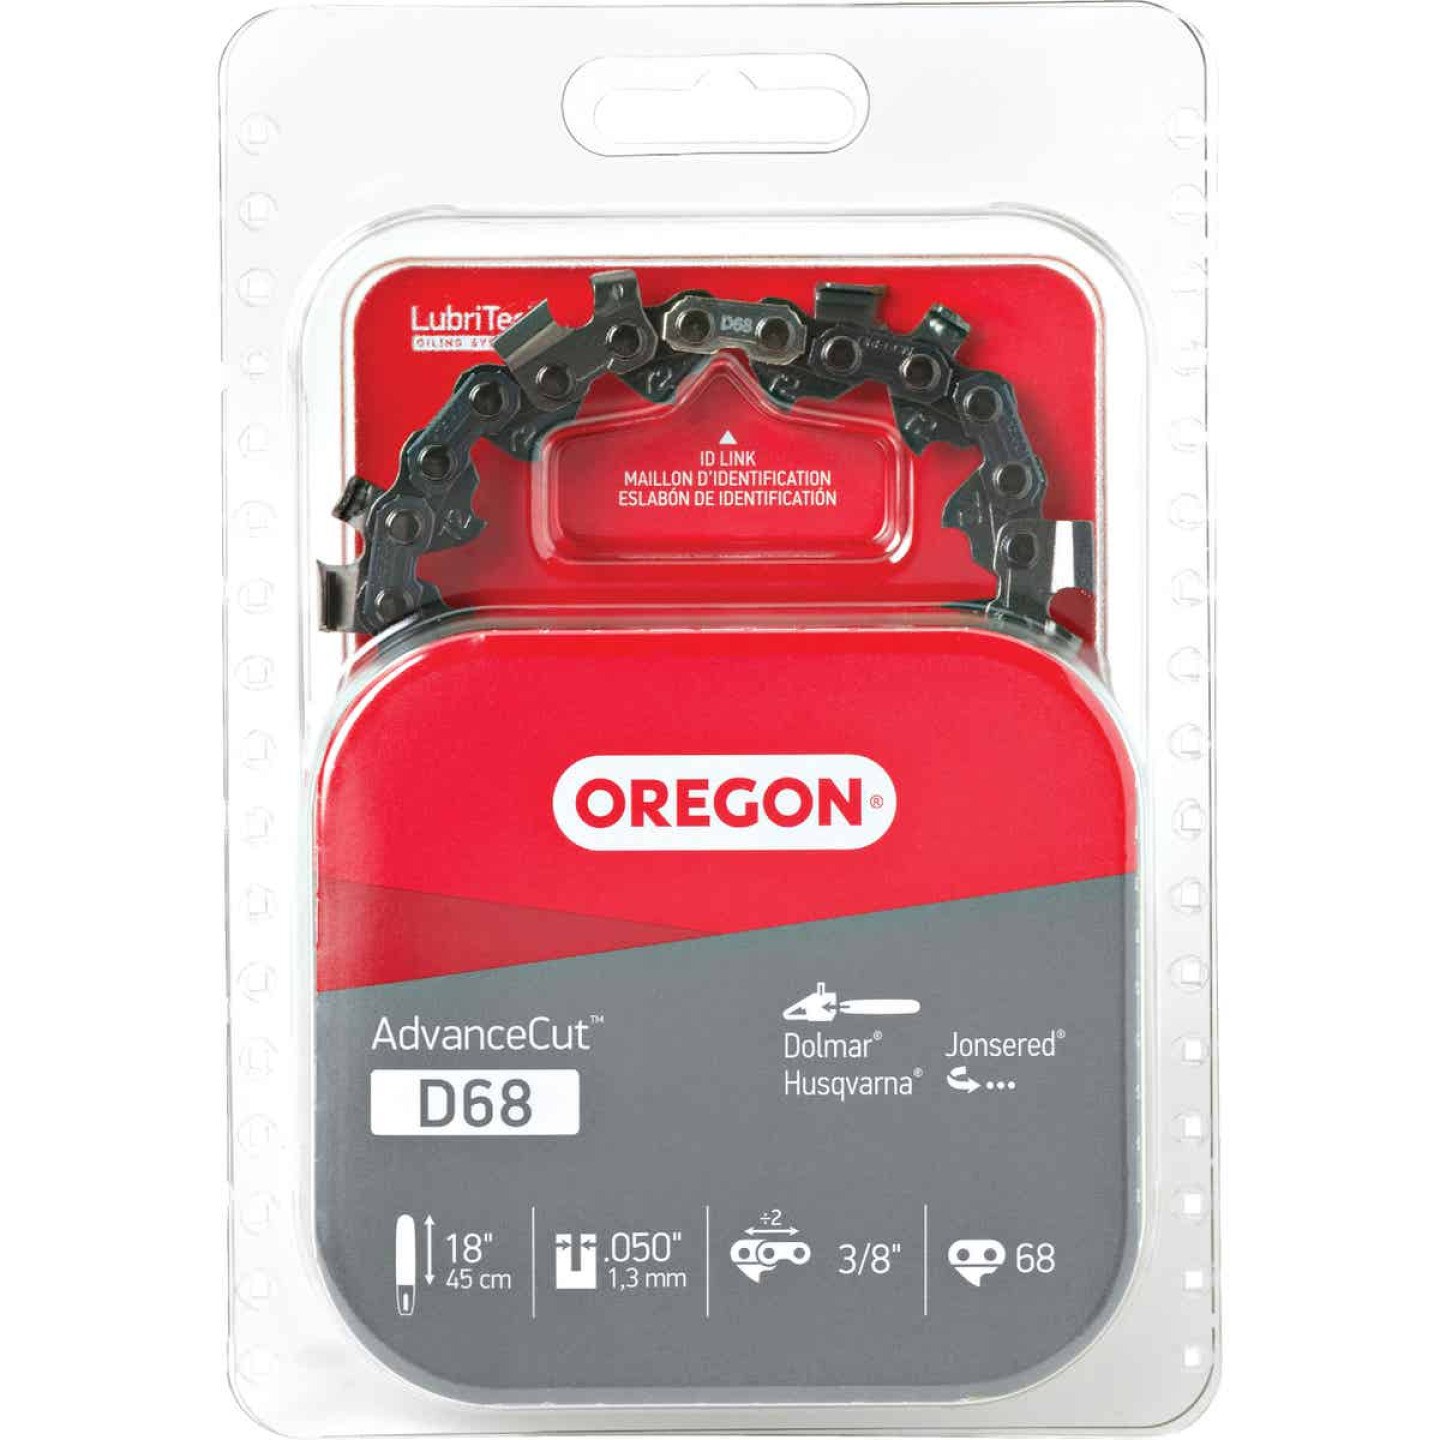 Oregon AdvanceCut D68 18 In. Chainsaw Chain Image 1